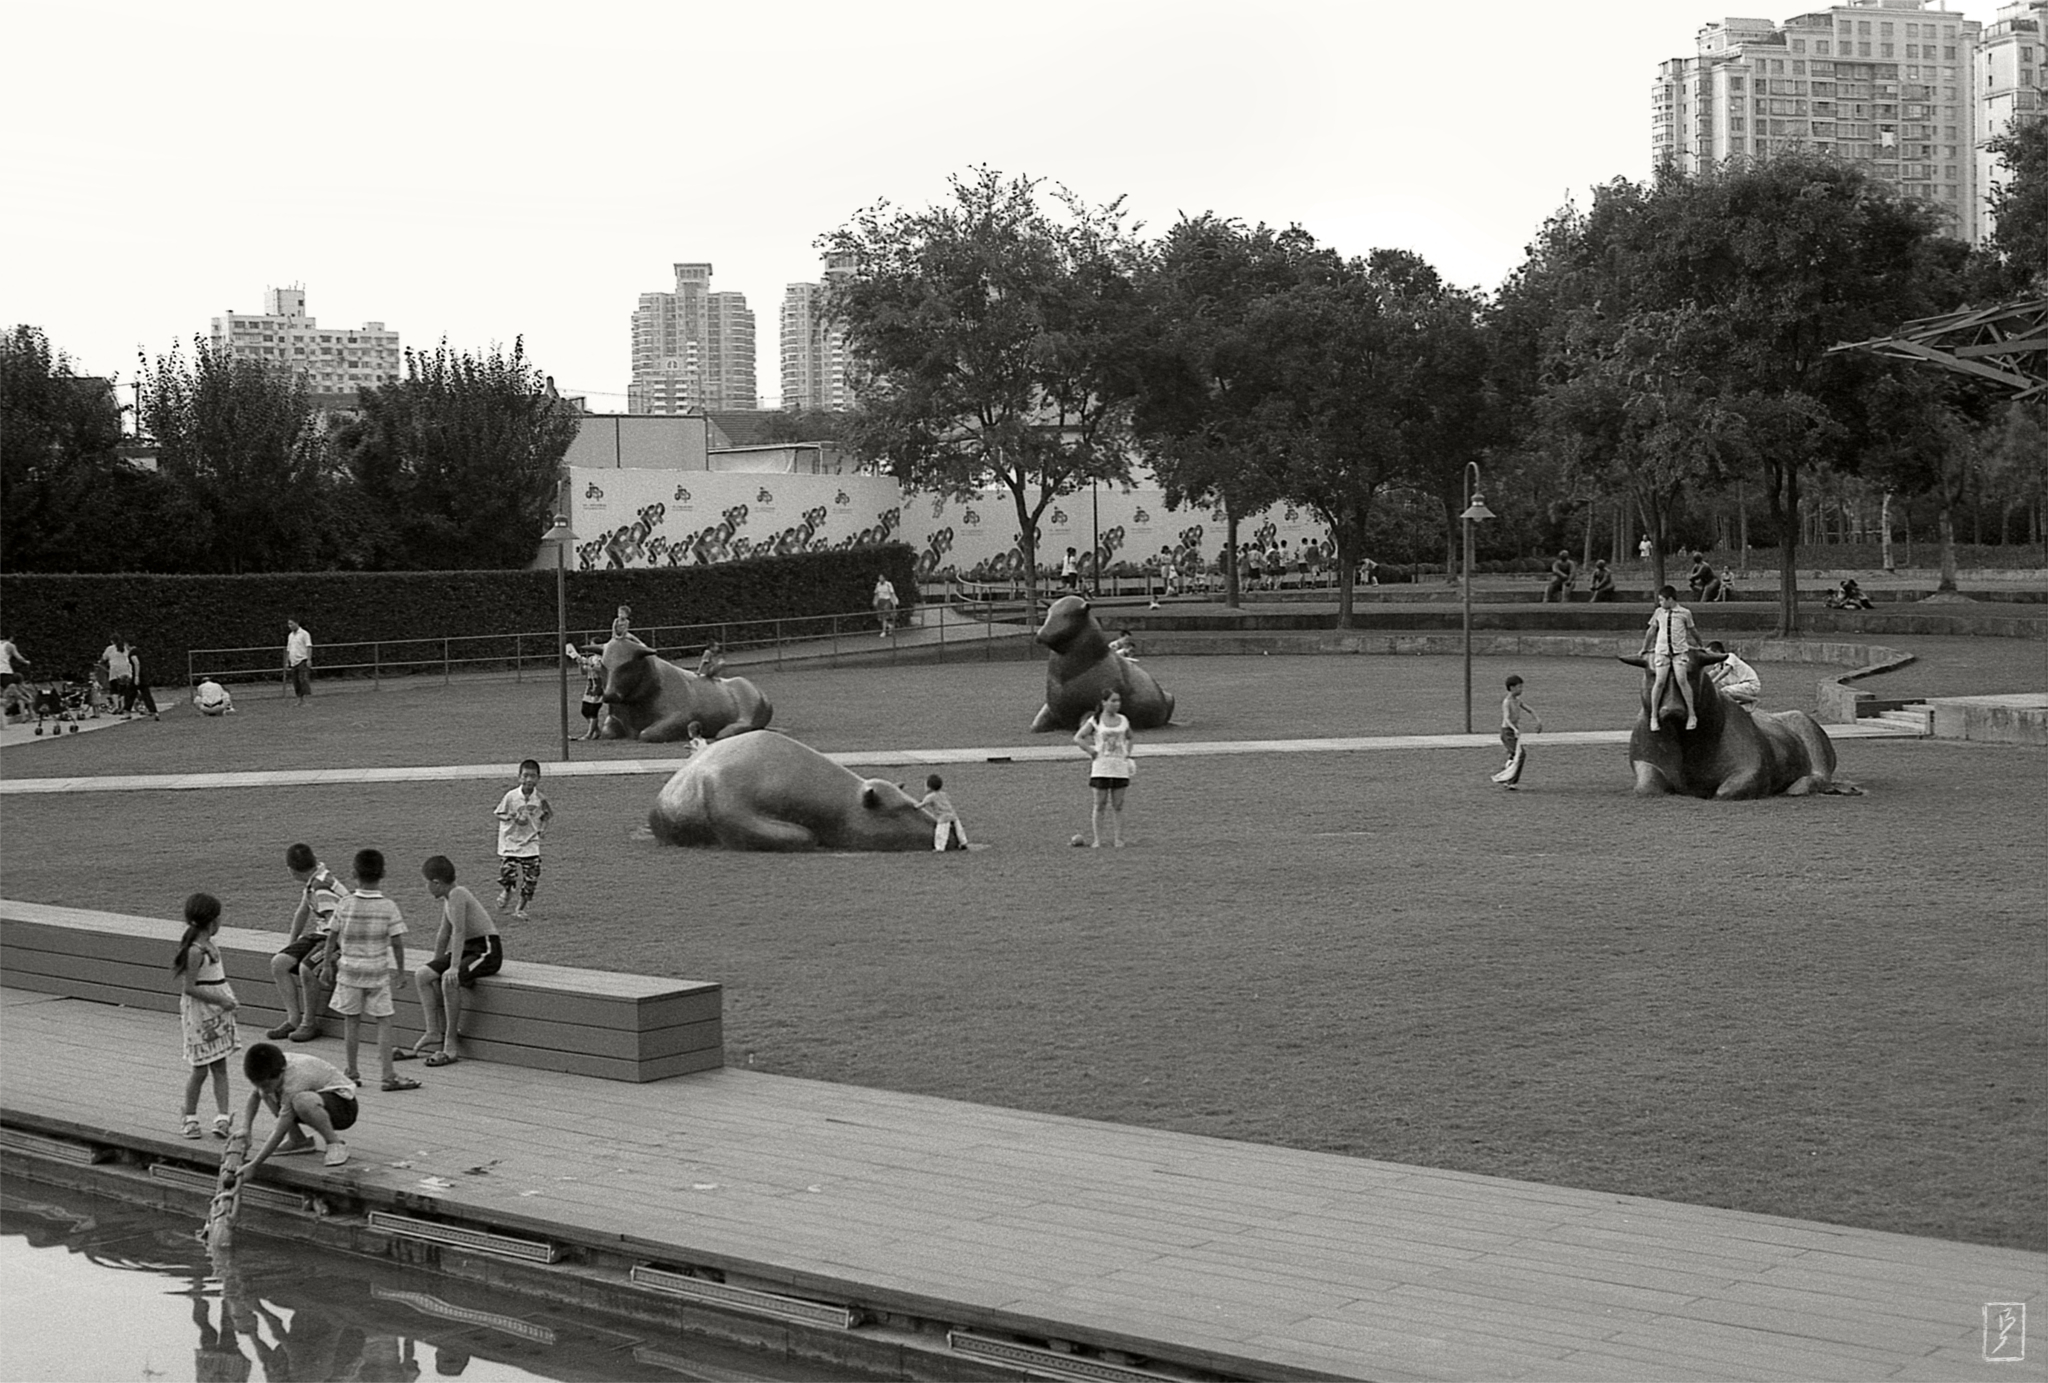 Jing'an sculpture park (静安雕塑公园): Children at play. Every five minutes or so, a guard would appear and yell at them to get off the statues.